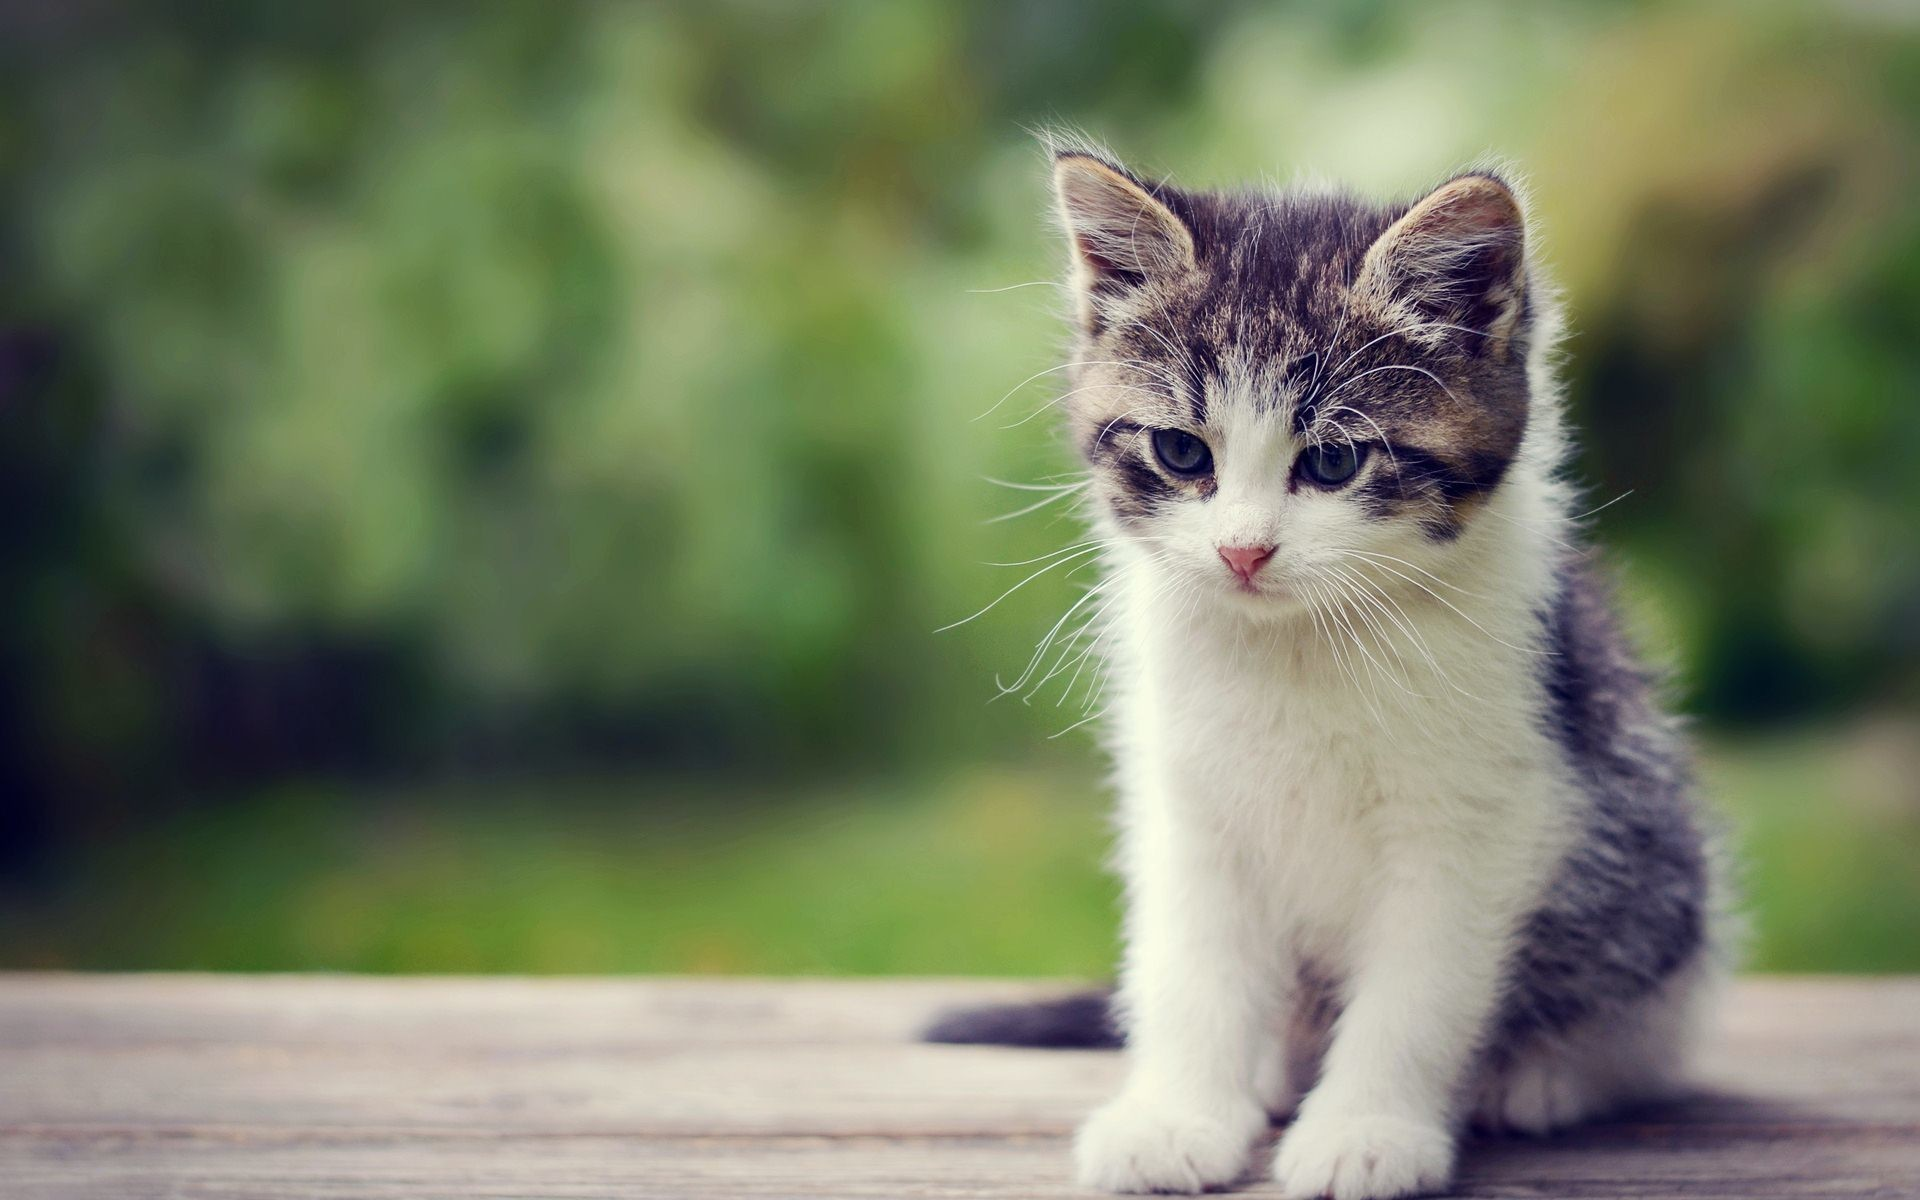 Kitten wallpaper for desktop 64 images - Kitten backgrounds ...